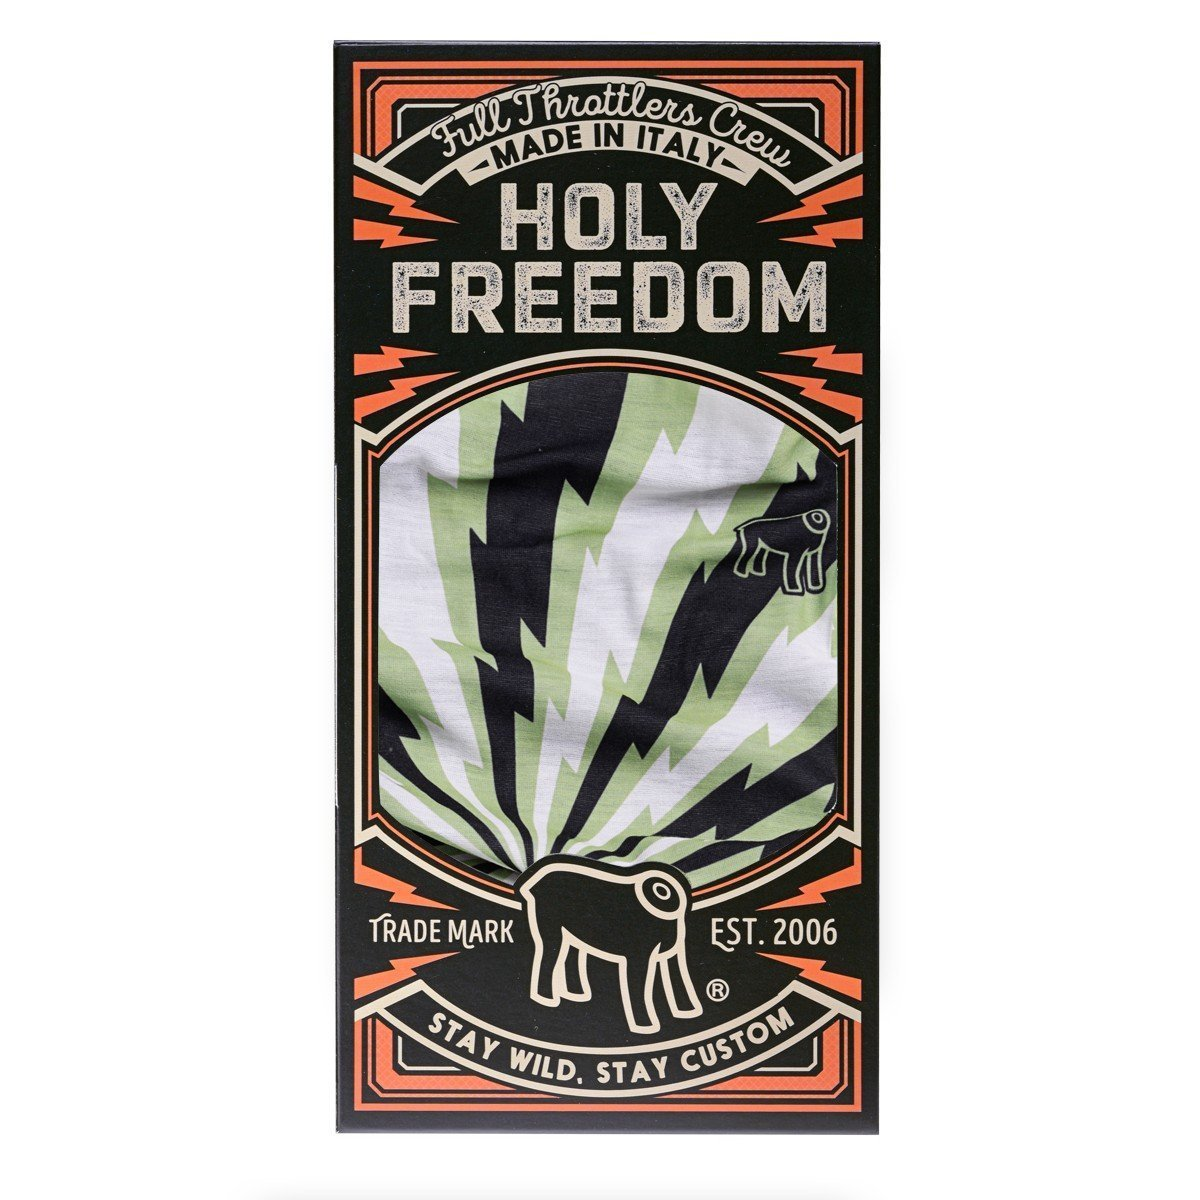 Holy Freedom - Holy Freedom Danger Primaloft Bandana Tube - Bandana's and Tubes - Salt Flats Clothing